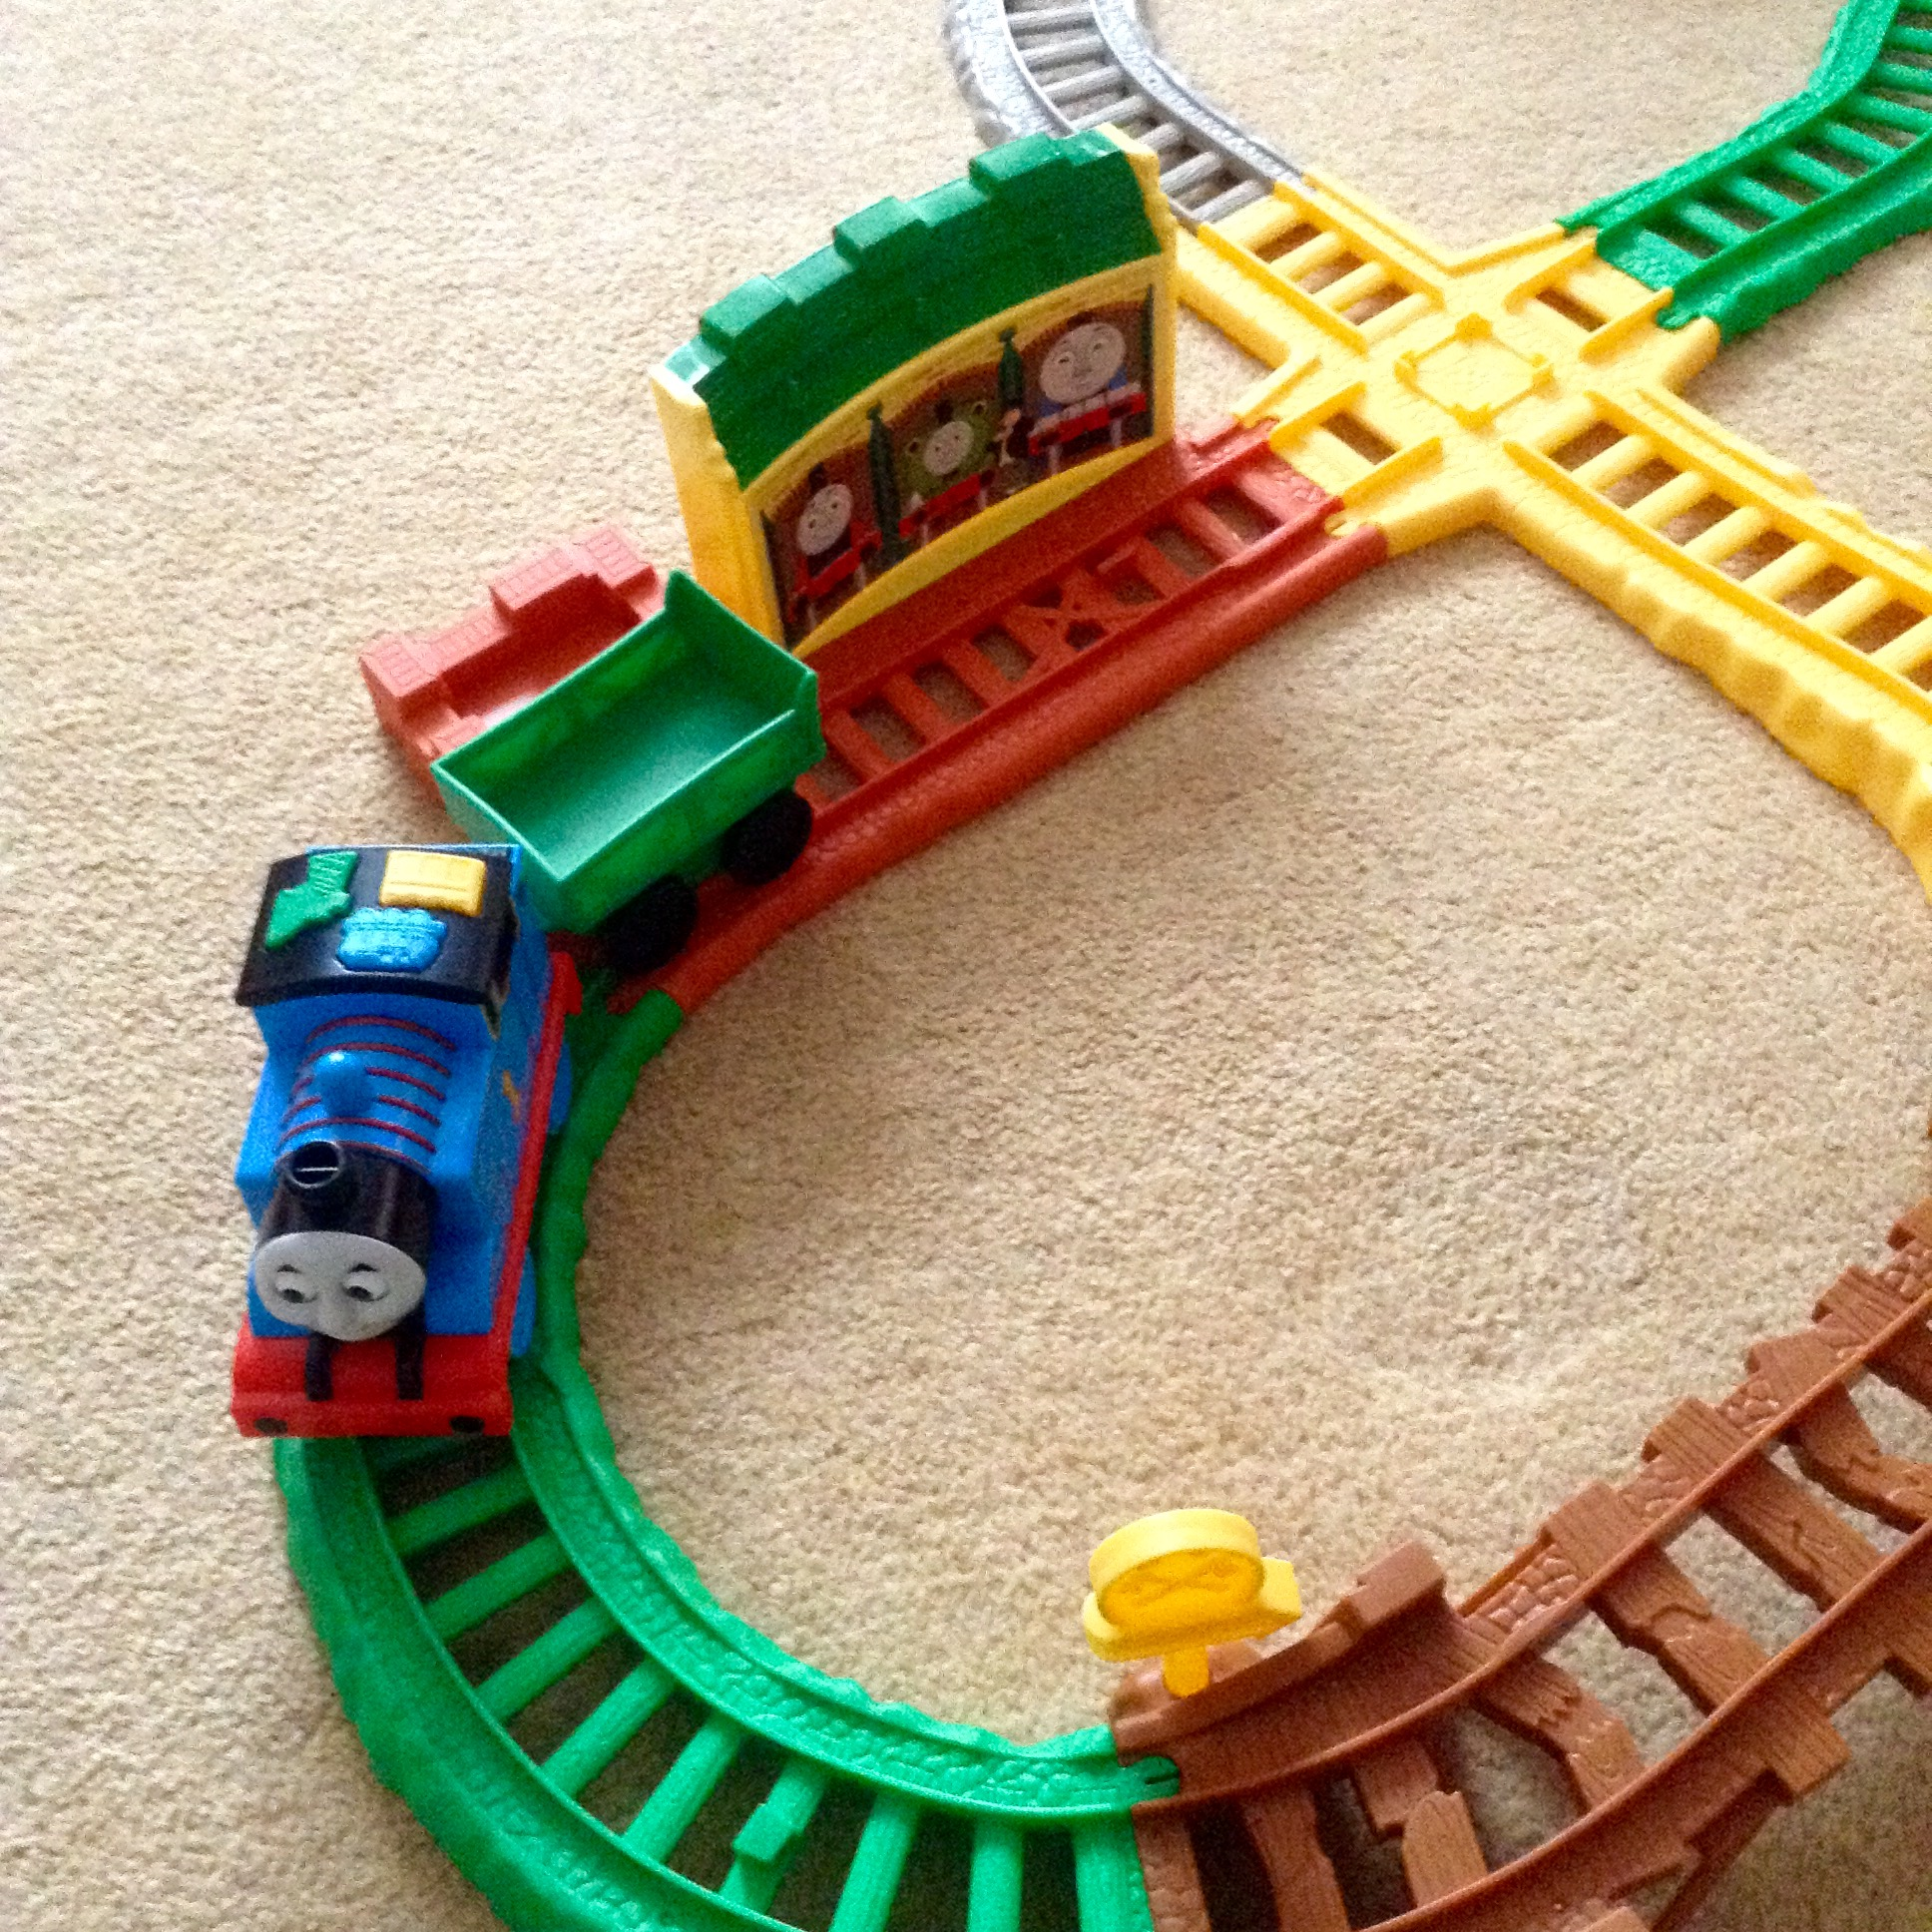 Thomas & Friends My First All Around Sodor, Thomas is a Tidmouth sheds